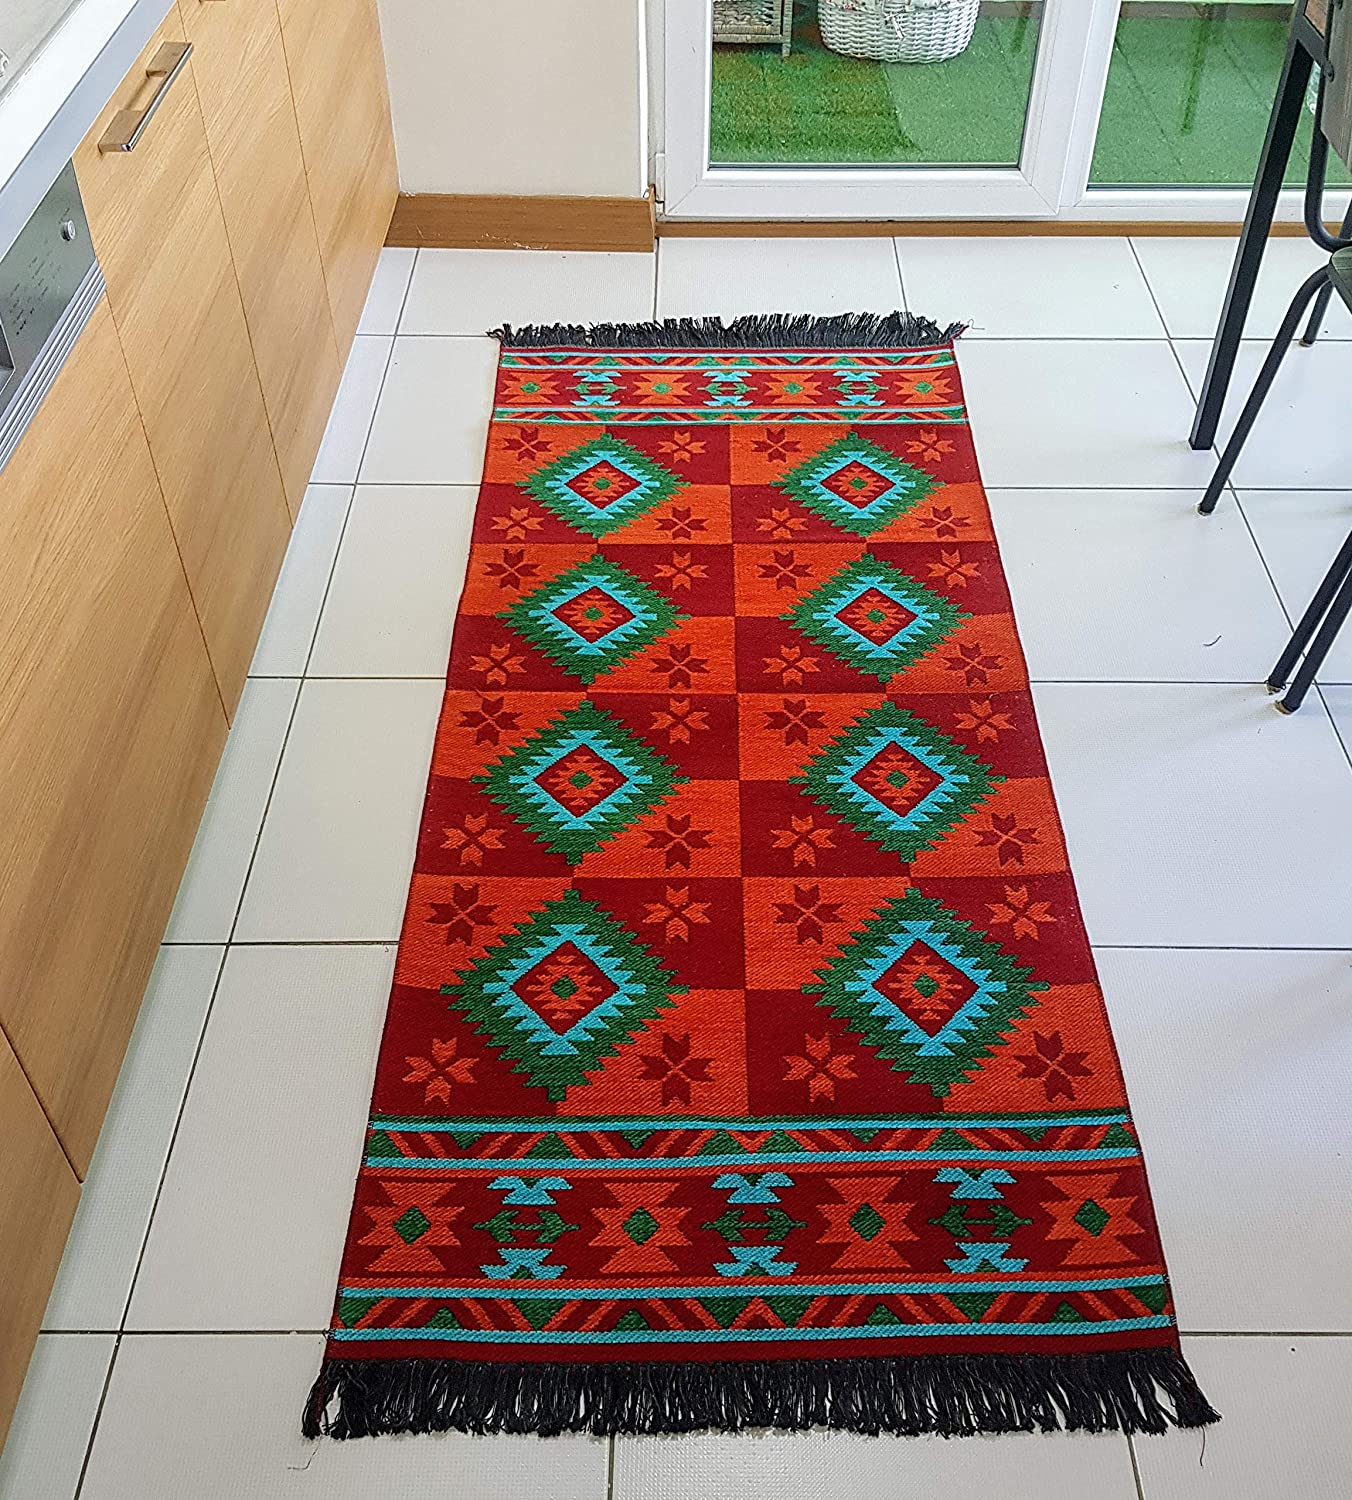 Secret Sea Collection, Mexican Area Rug, Double Sided, Washable (2.5' x 6', Red-Orange-Turquoise)